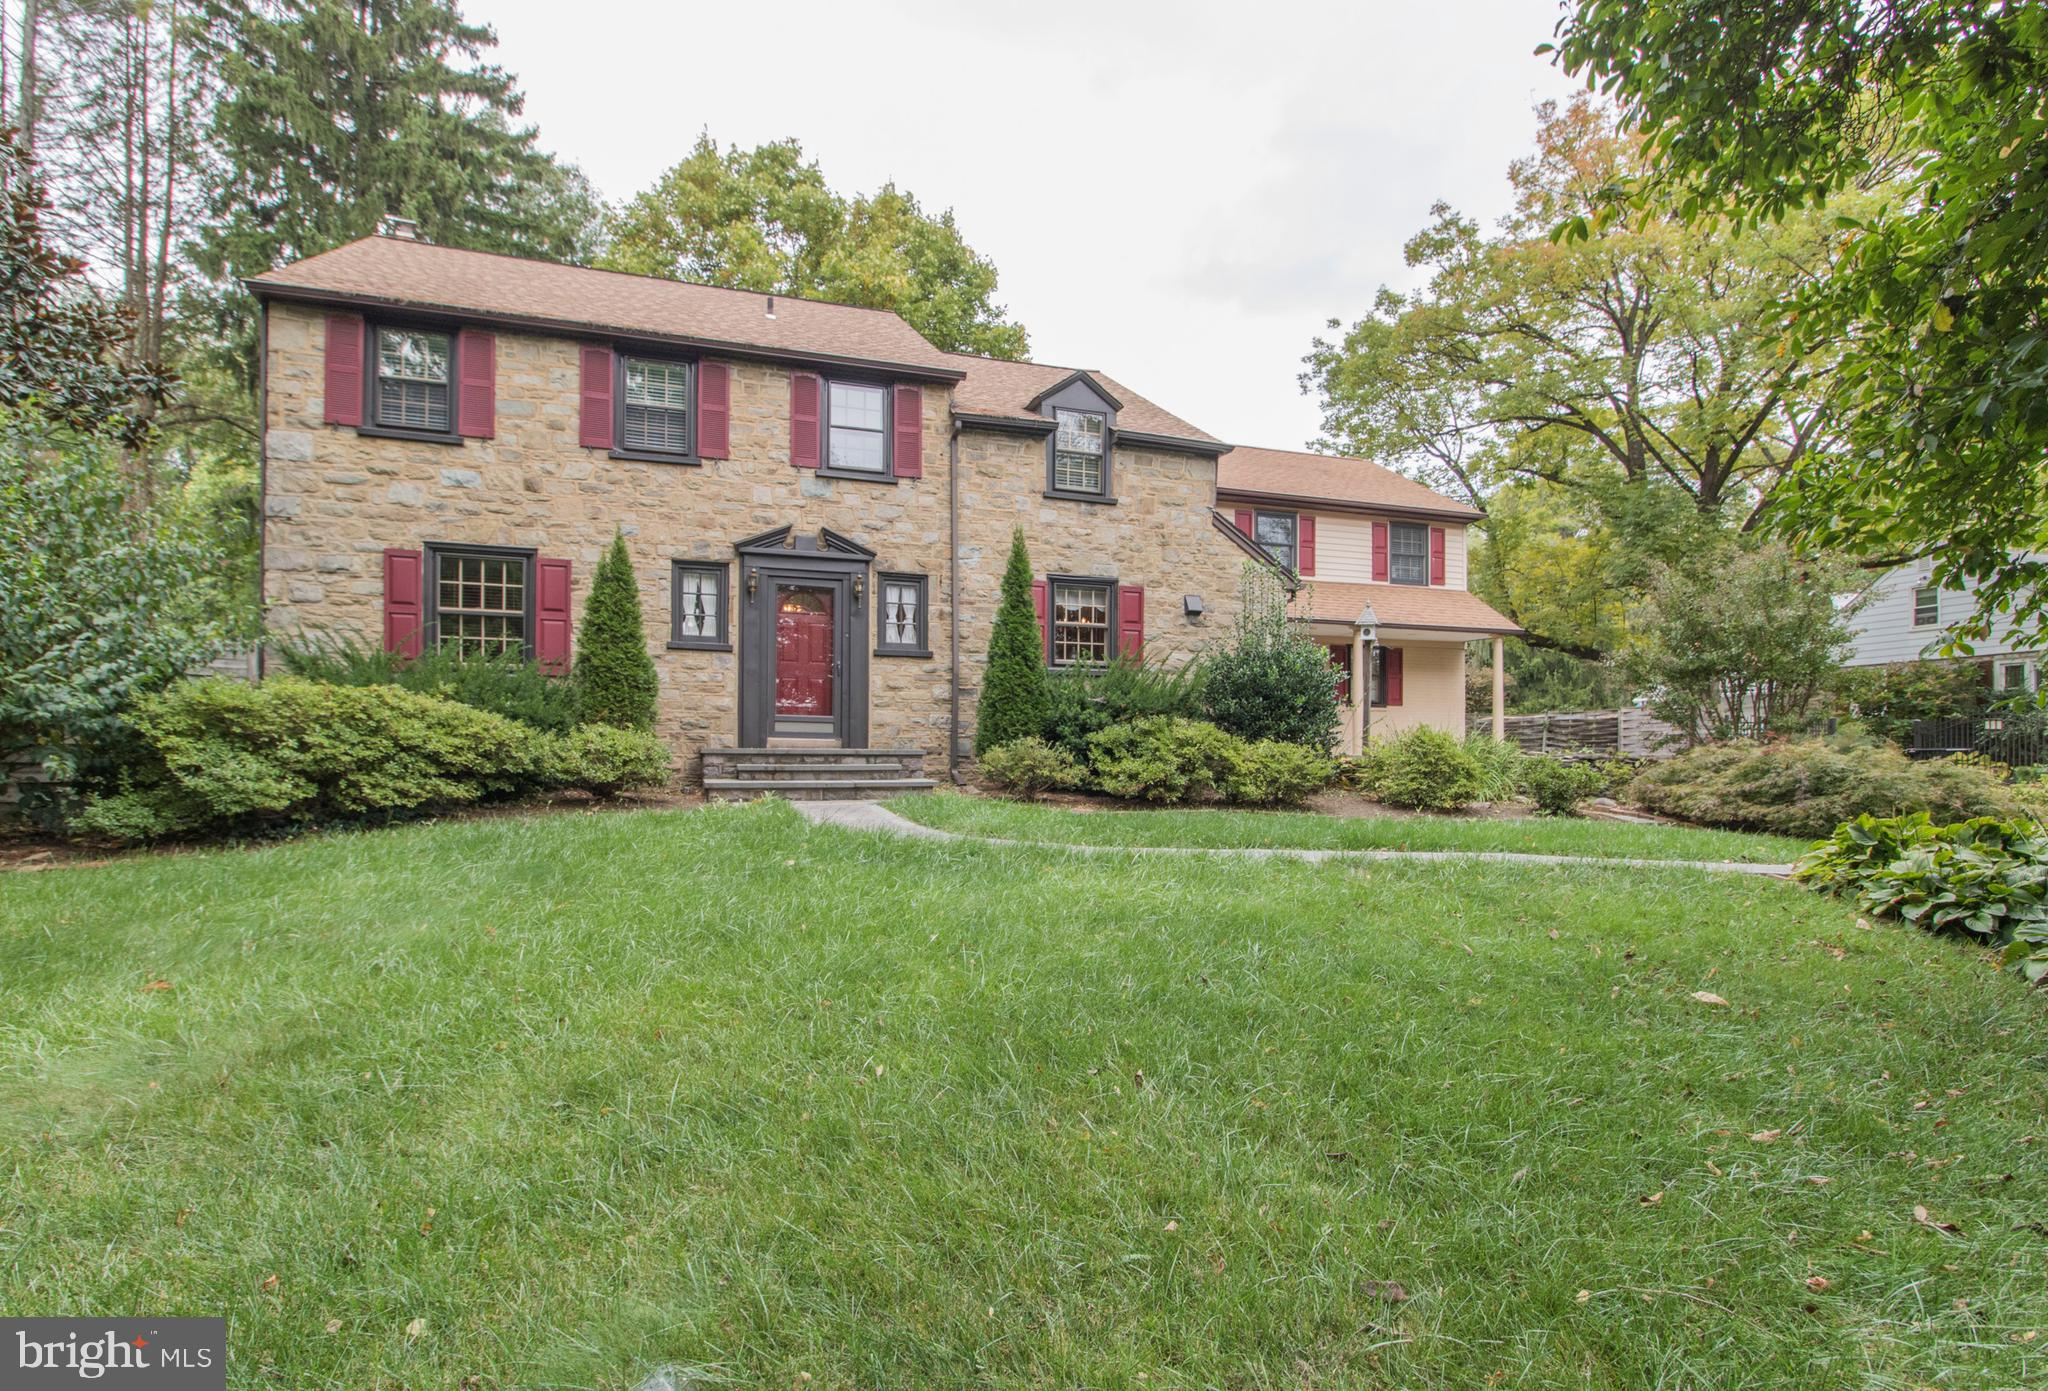 416 RICES MILL ROAD, WYNCOTE, PA 19095